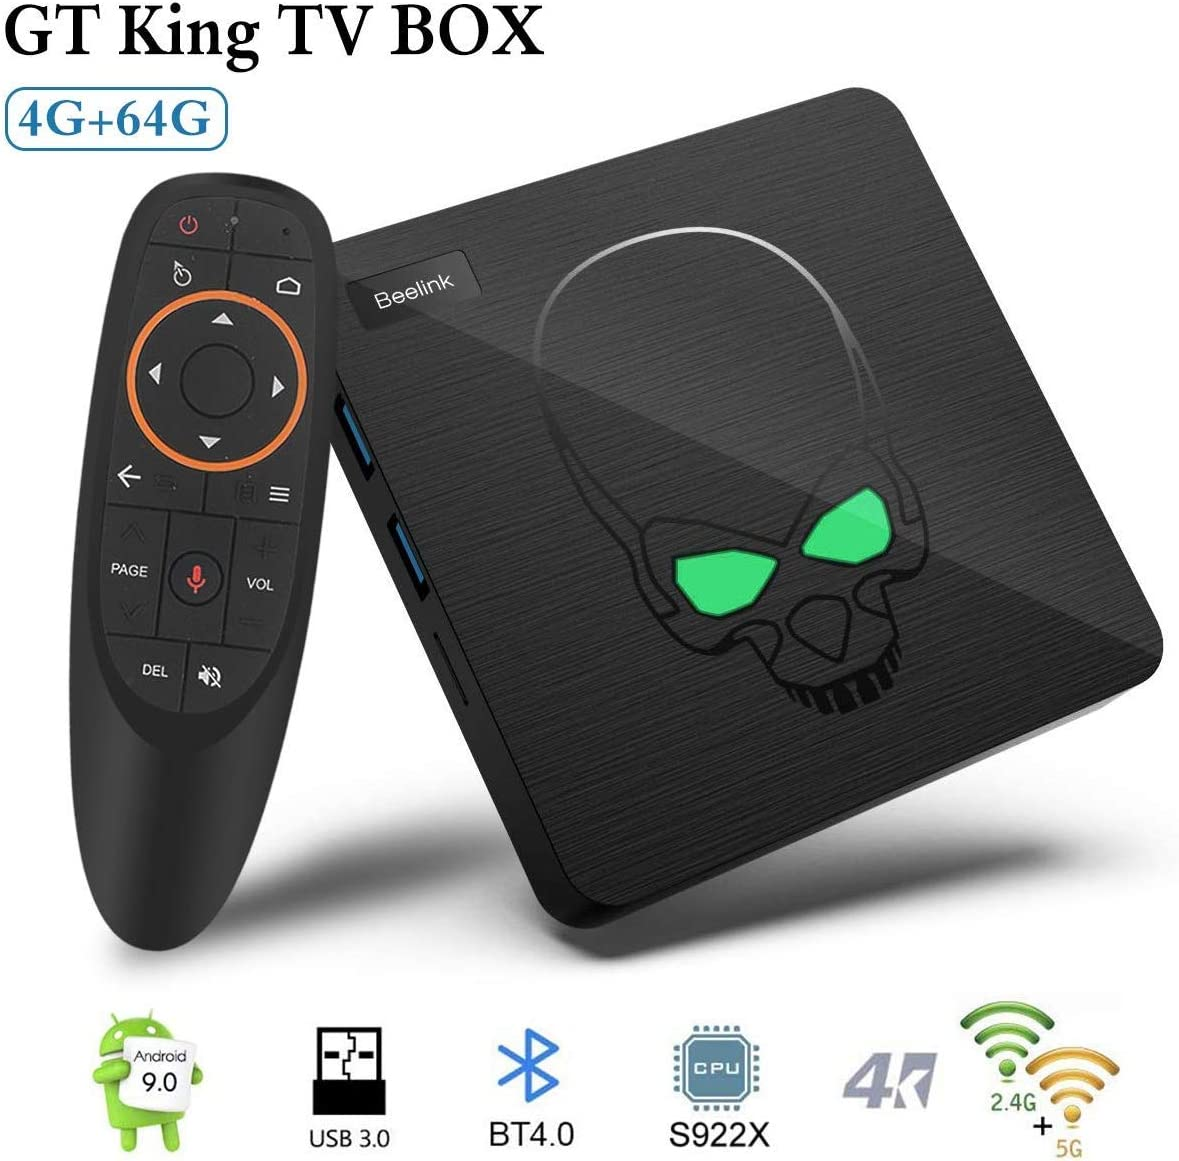 Android TV Box, 2020 TV Box Android 9.0 con 4GB RAM 64GB ROM S922X Hexa-core ARM Cortex-A73 Smart TV Box, soporta 4K Resolución 3D 2.4GHz/5.8GHz WiFi 1000M Ethernet USB 3.0 Reproductor Multimedia: